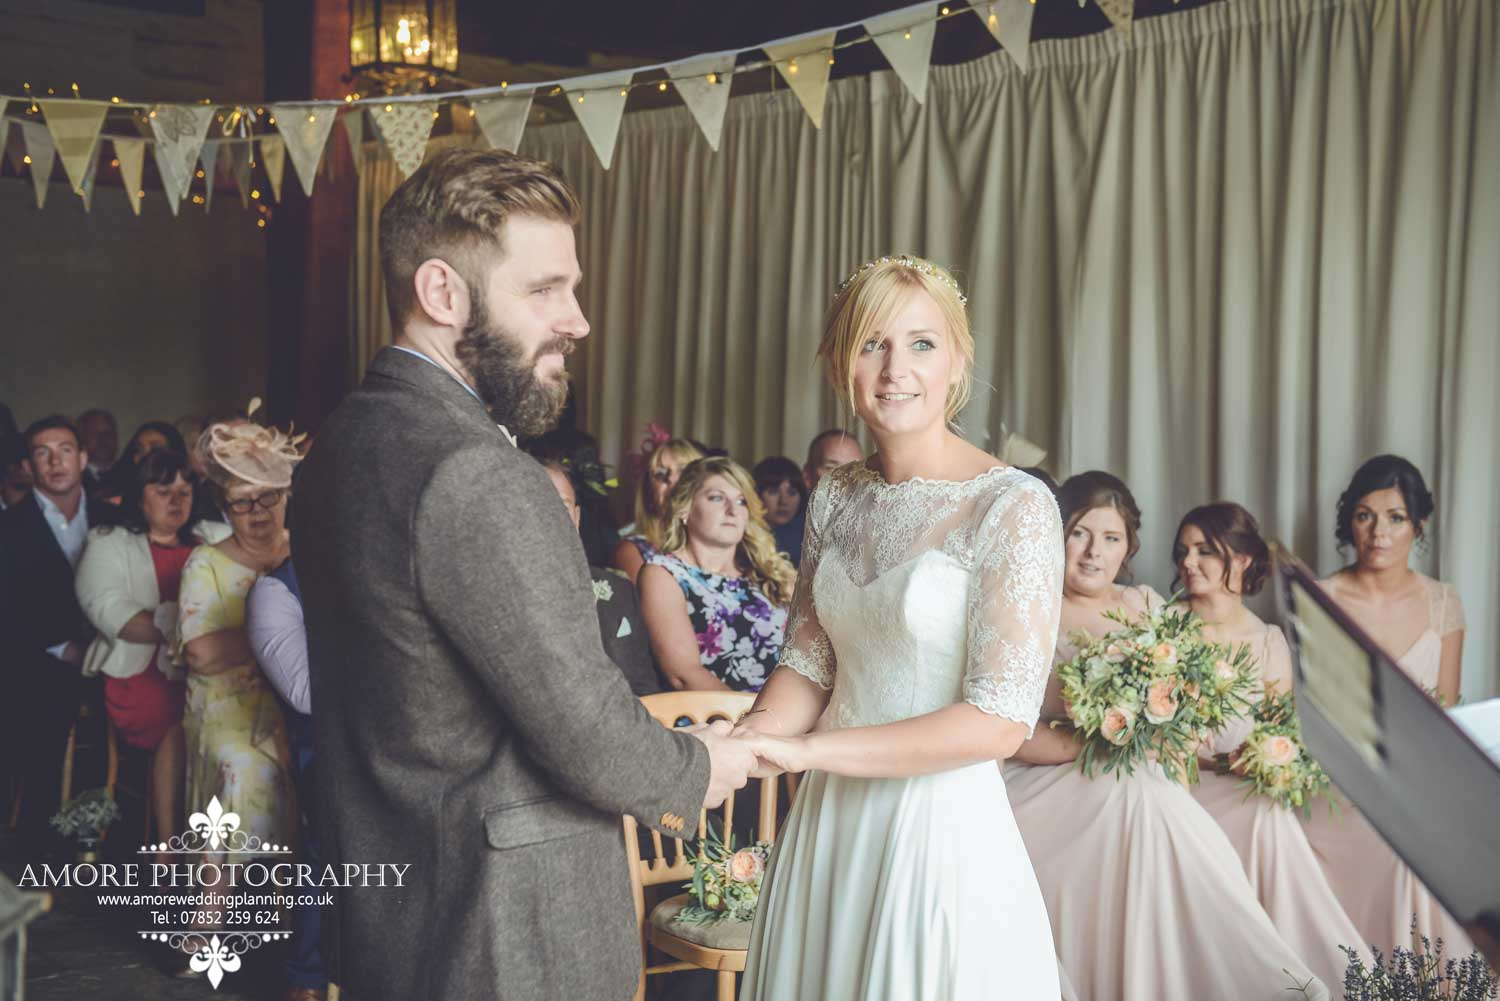 Vintage Wedding Photographer Wakefield North Yorkshire Leeds Wedding Photography Vintage Rustic Barn Weddings (58)